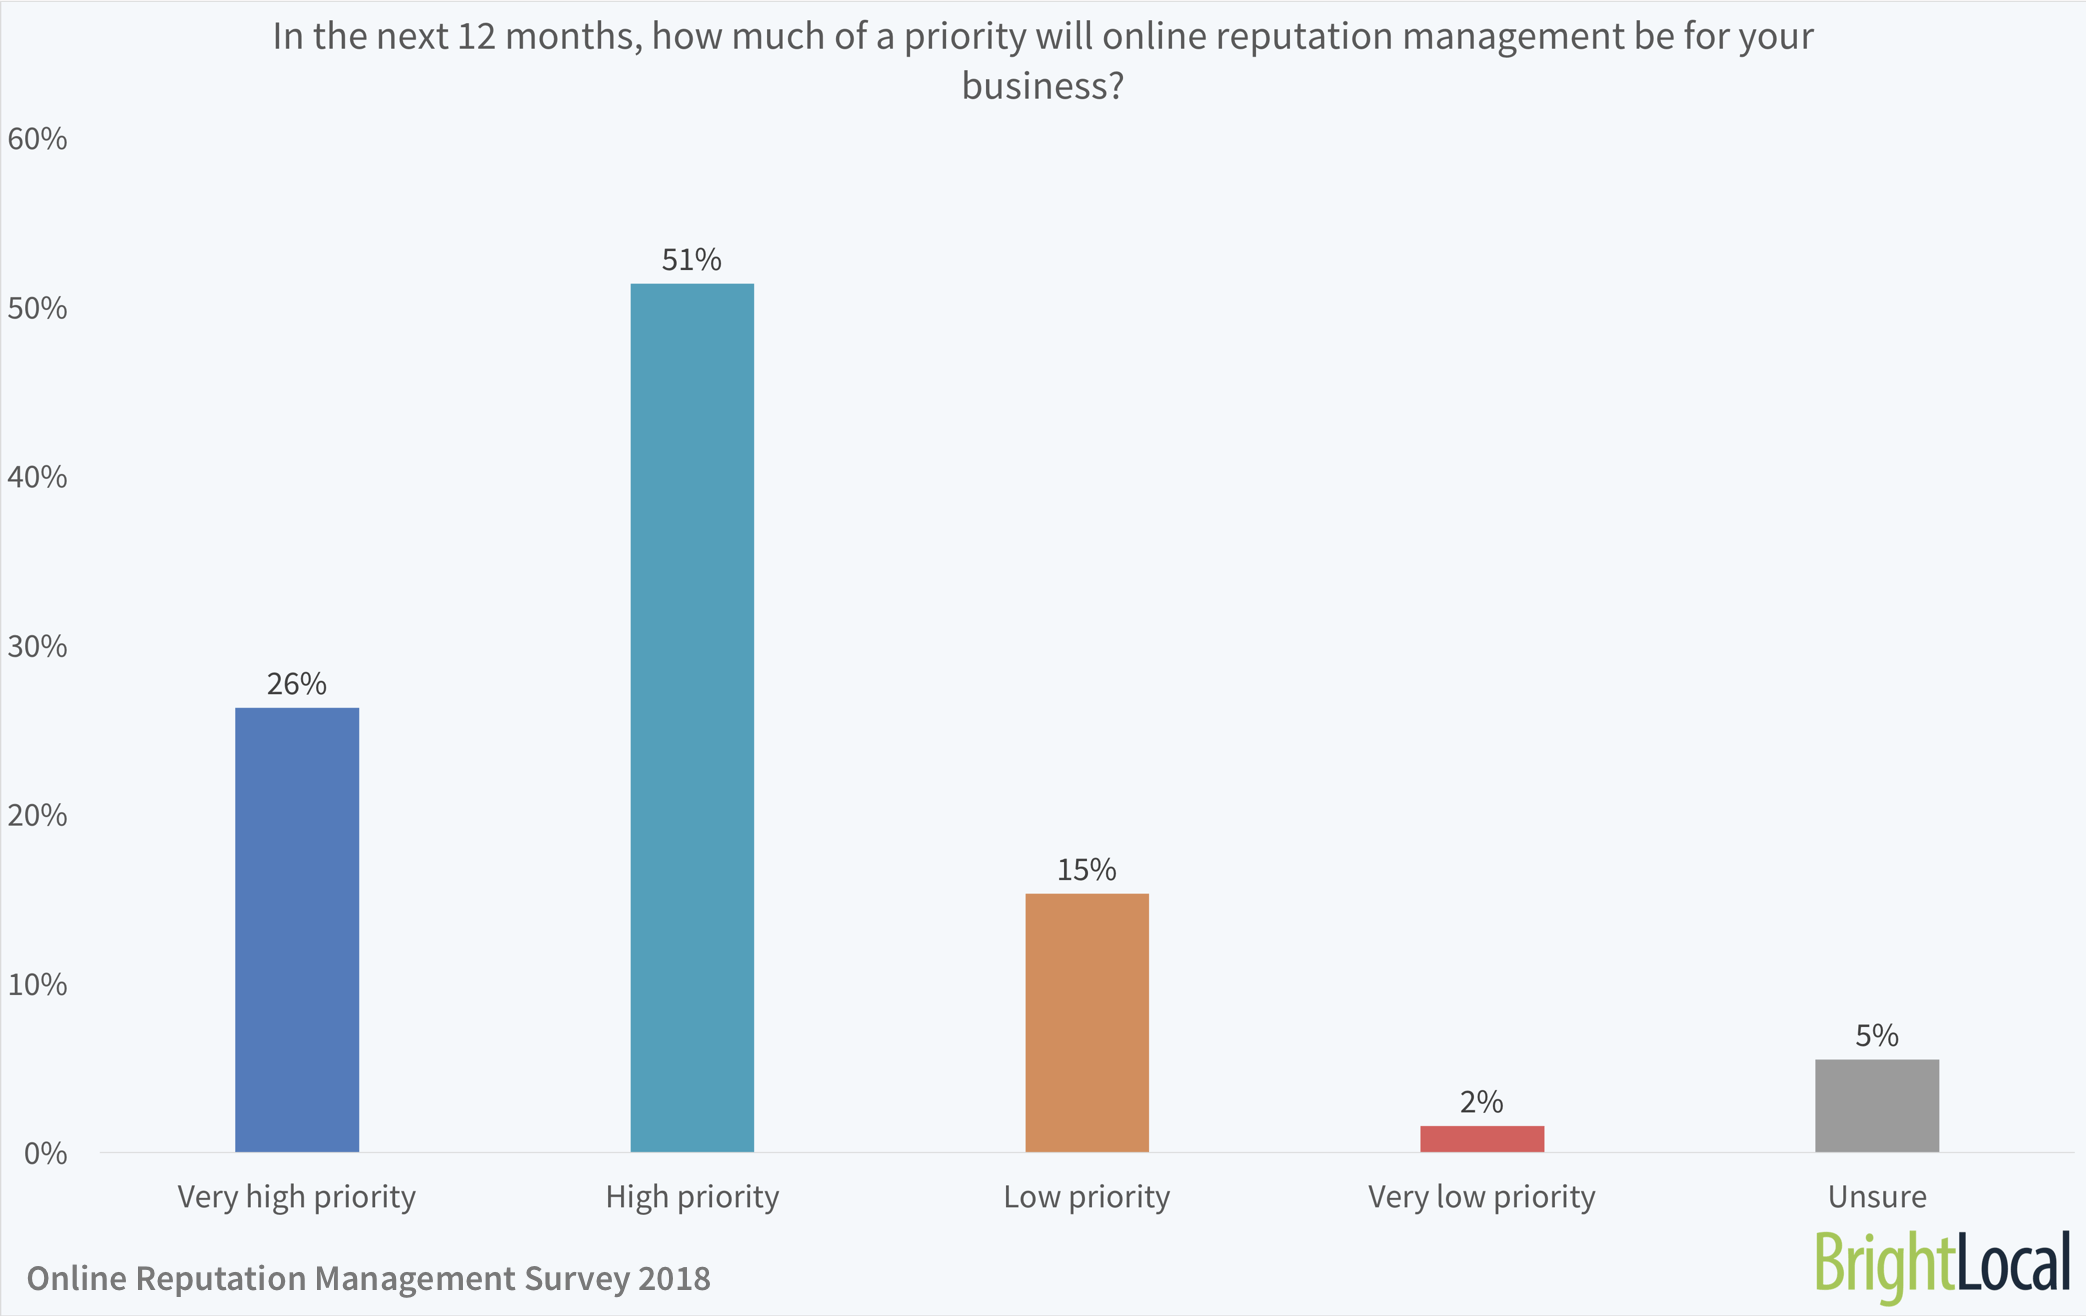 In the next 12 months, how much of a priority will online reputation management be for your business?